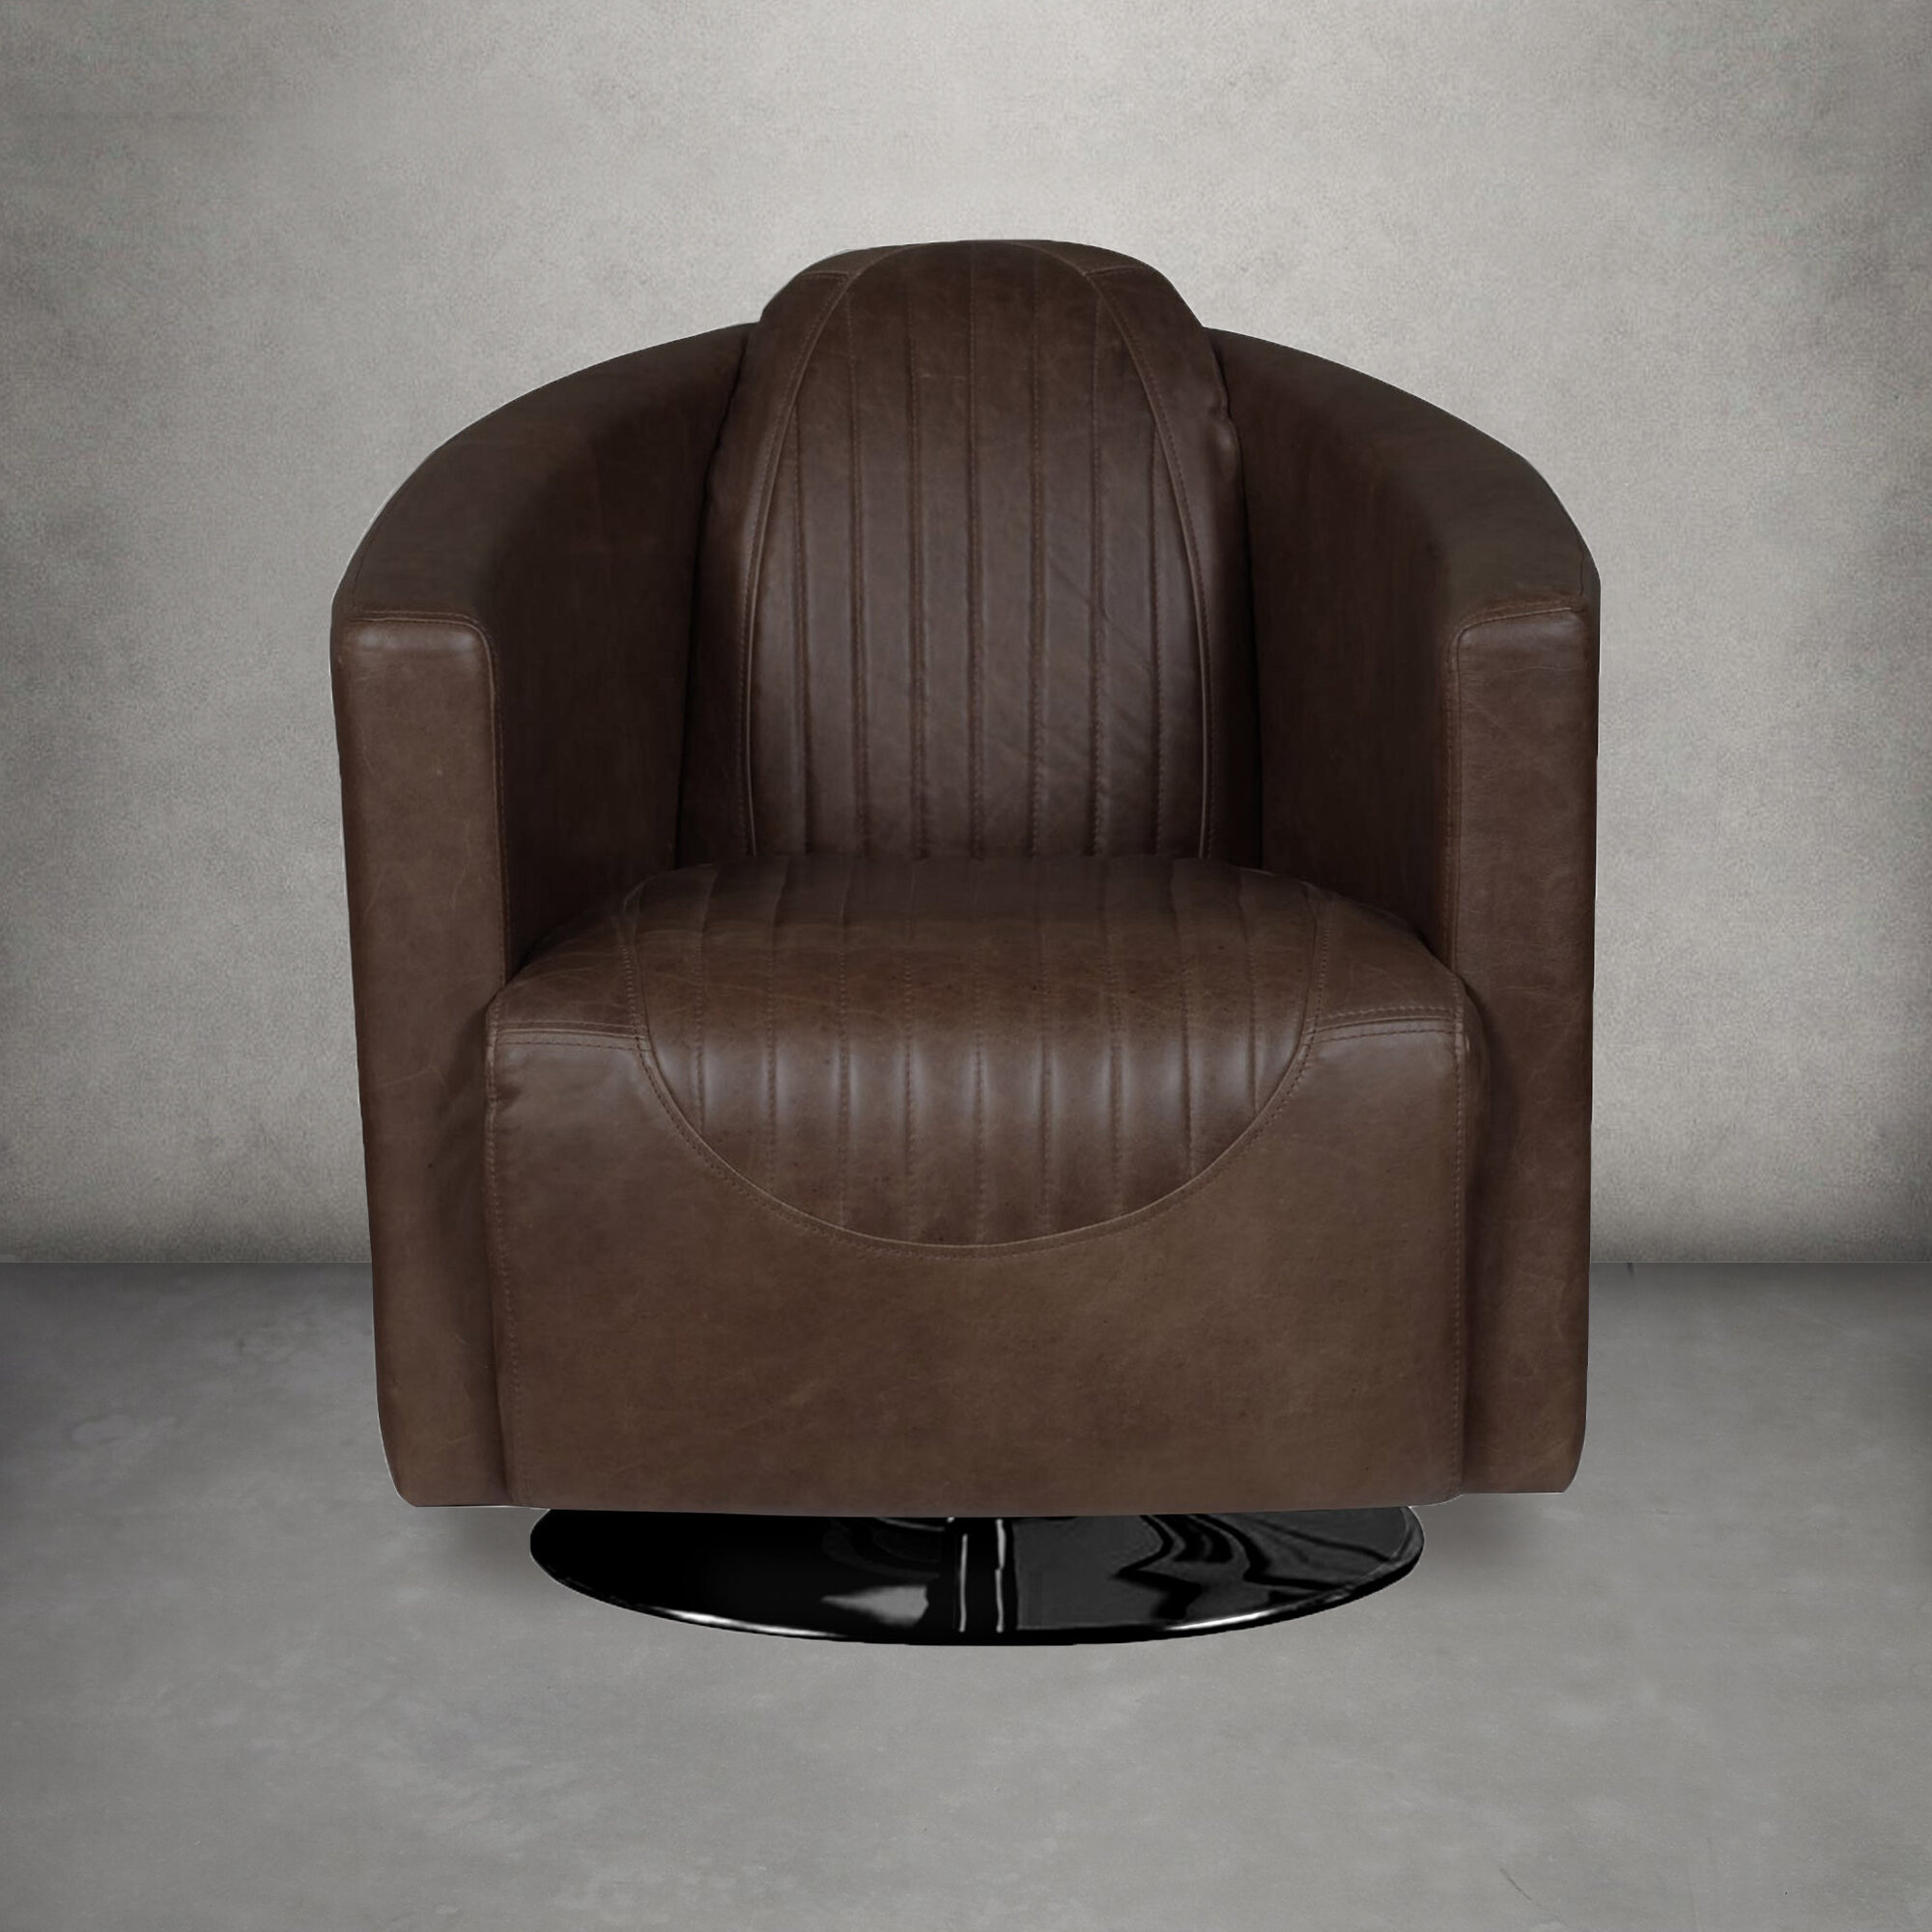 Barrel 17 Stories Accent Chairs You'Ll Love In 2021 | Wayfair Throughout Hazley Faux Leather Swivel Barrel Chairs (View 3 of 15)